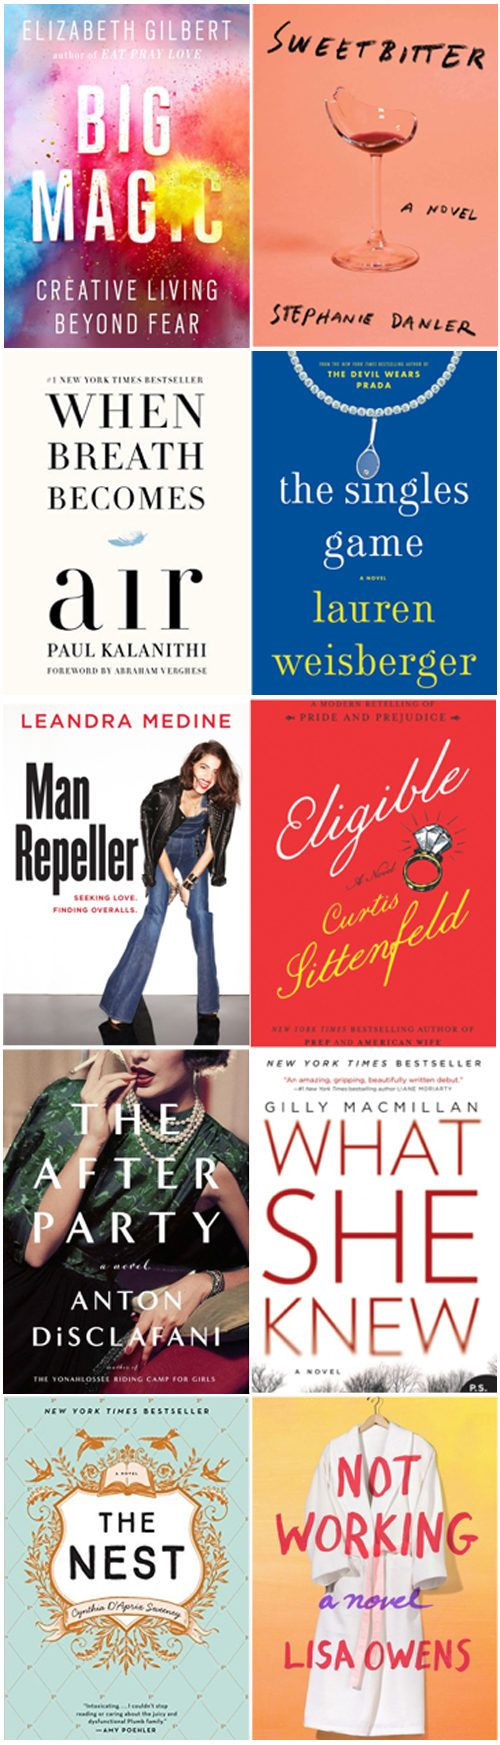 10 books to read this summer.